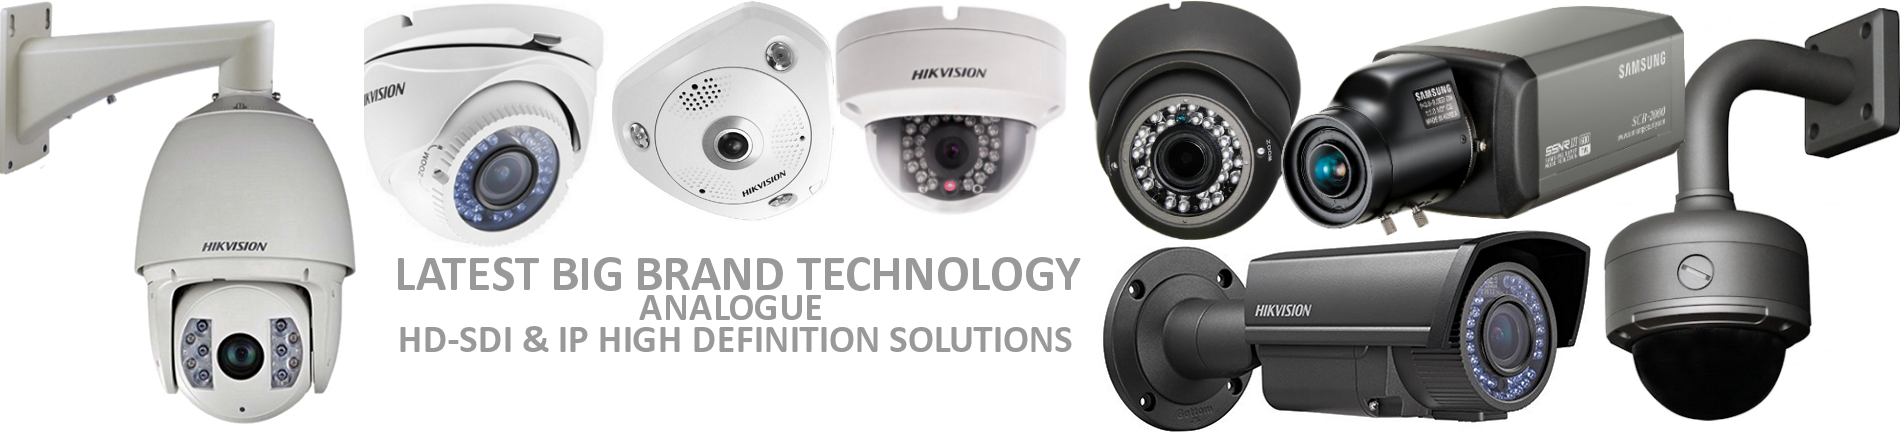 Harrow CCTV Installation SatFocus